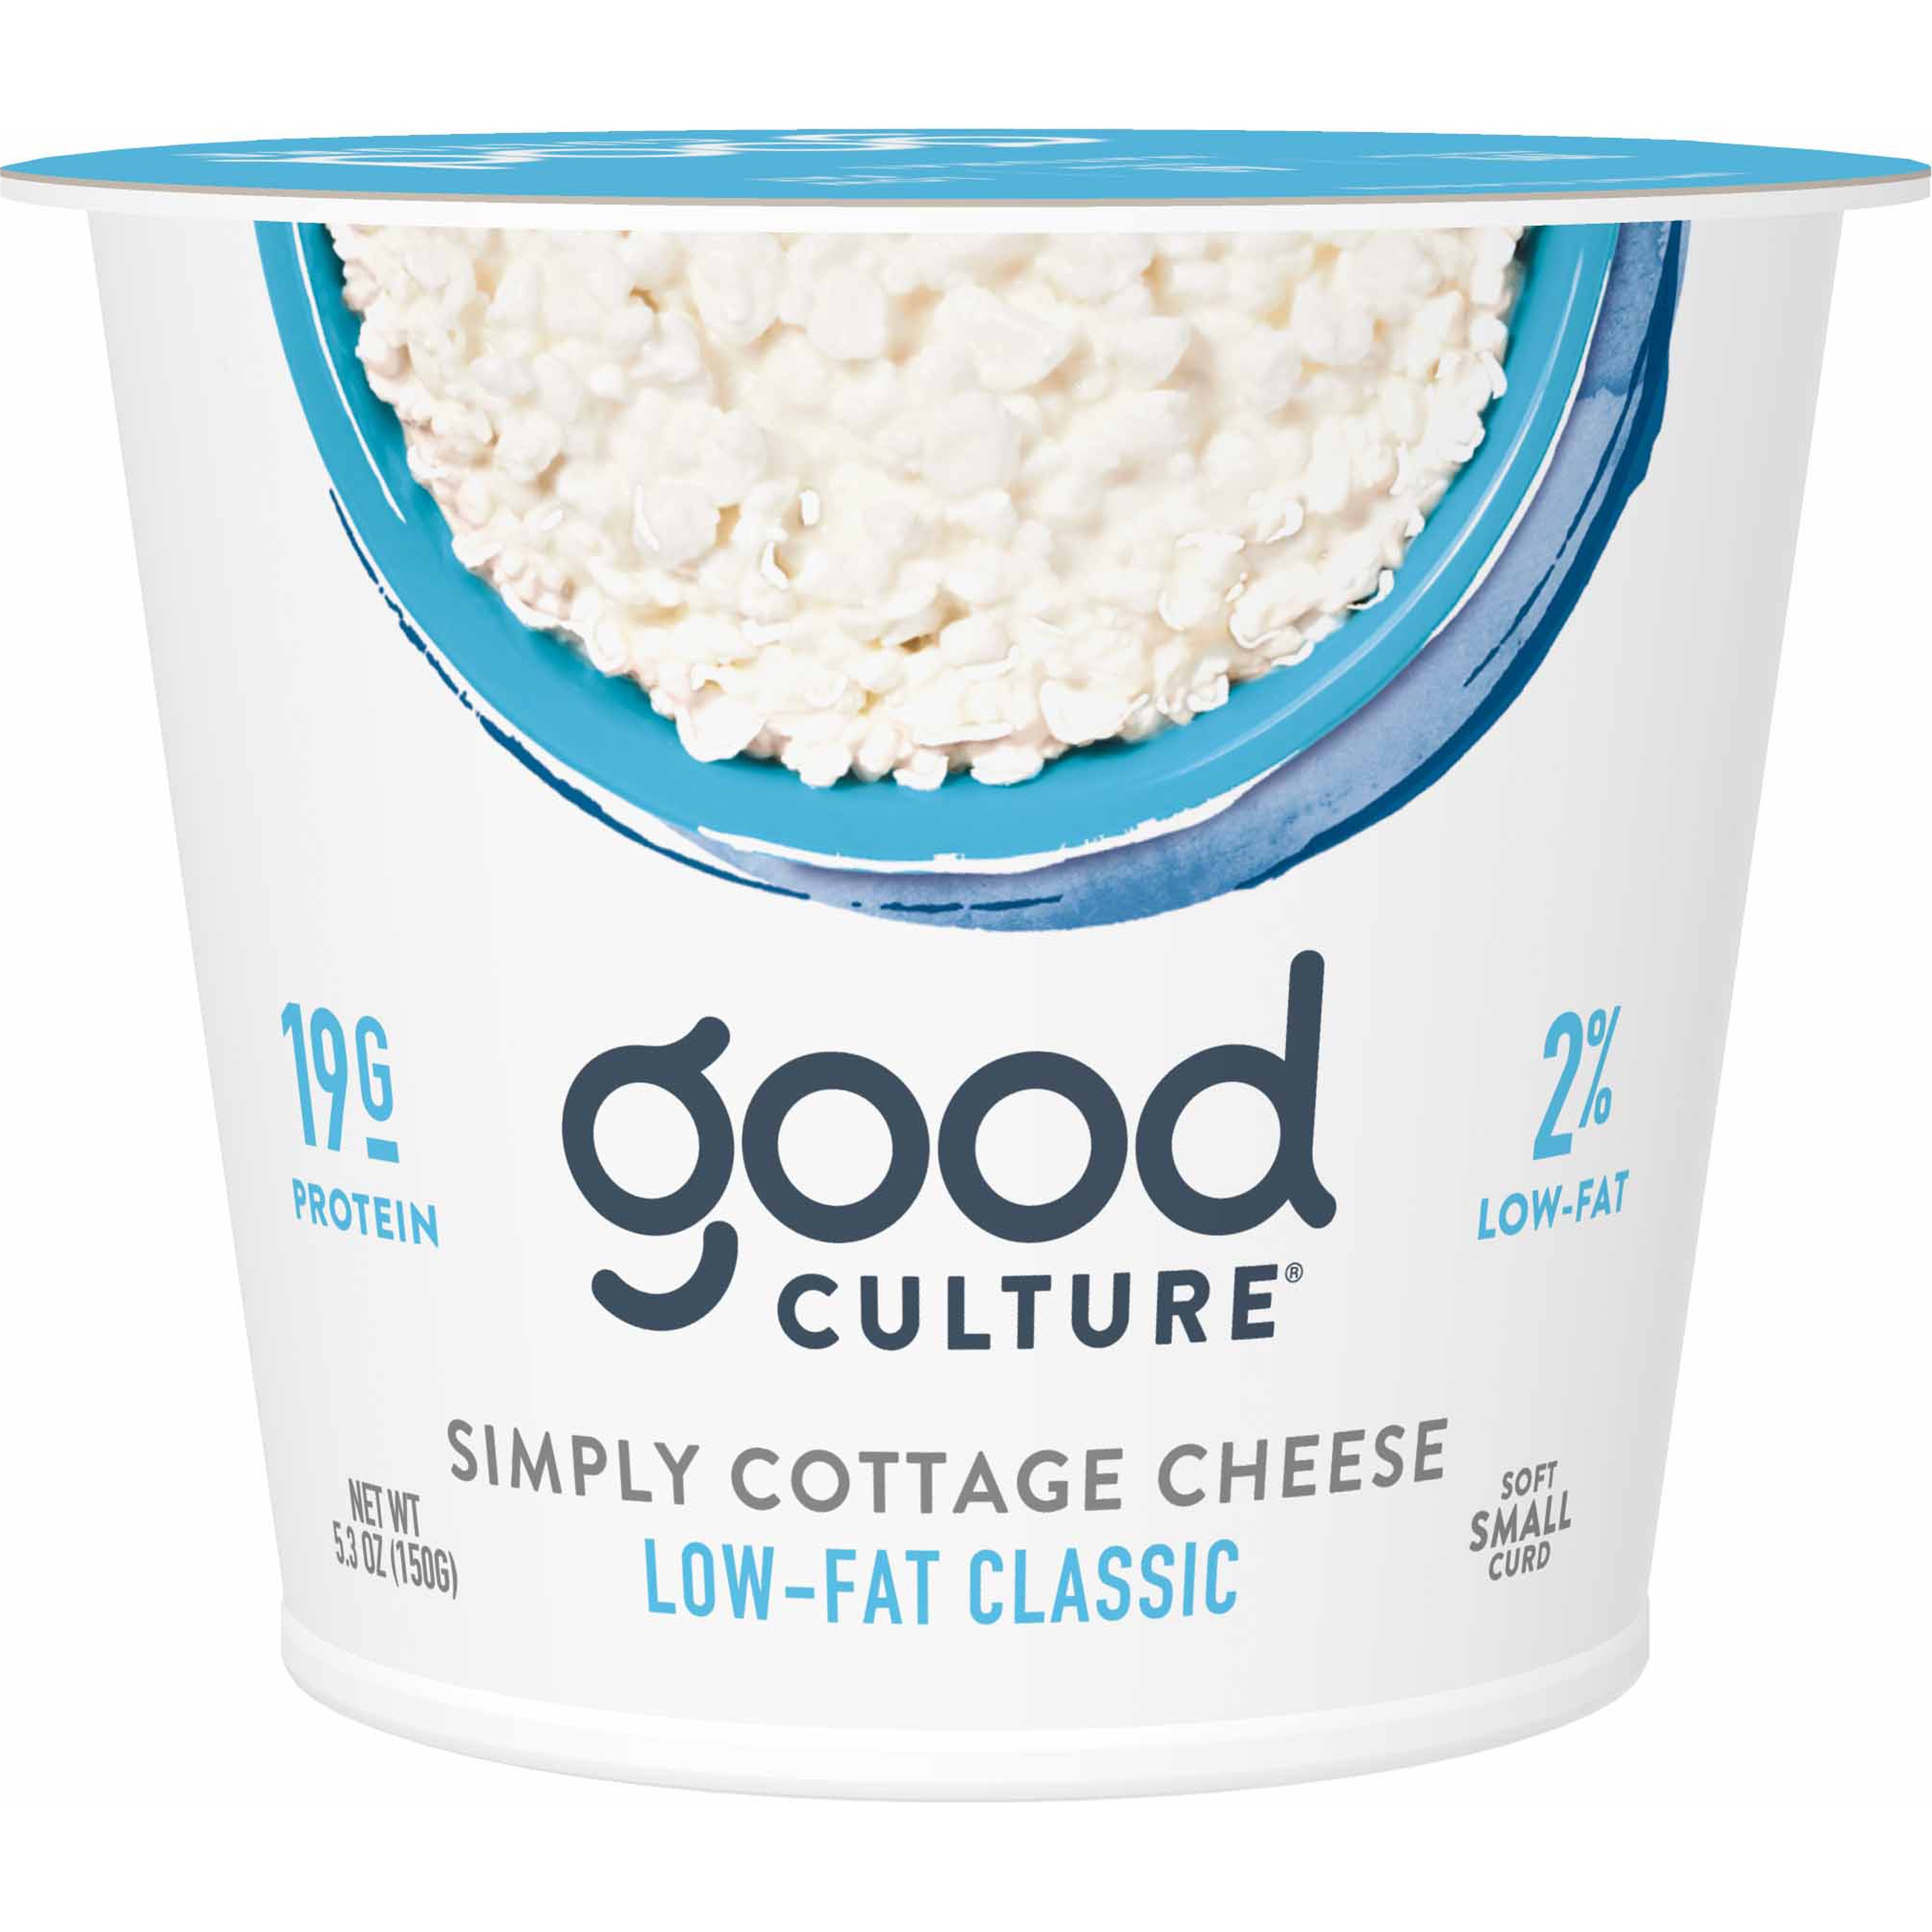 Cottage cheese, its good for all ages